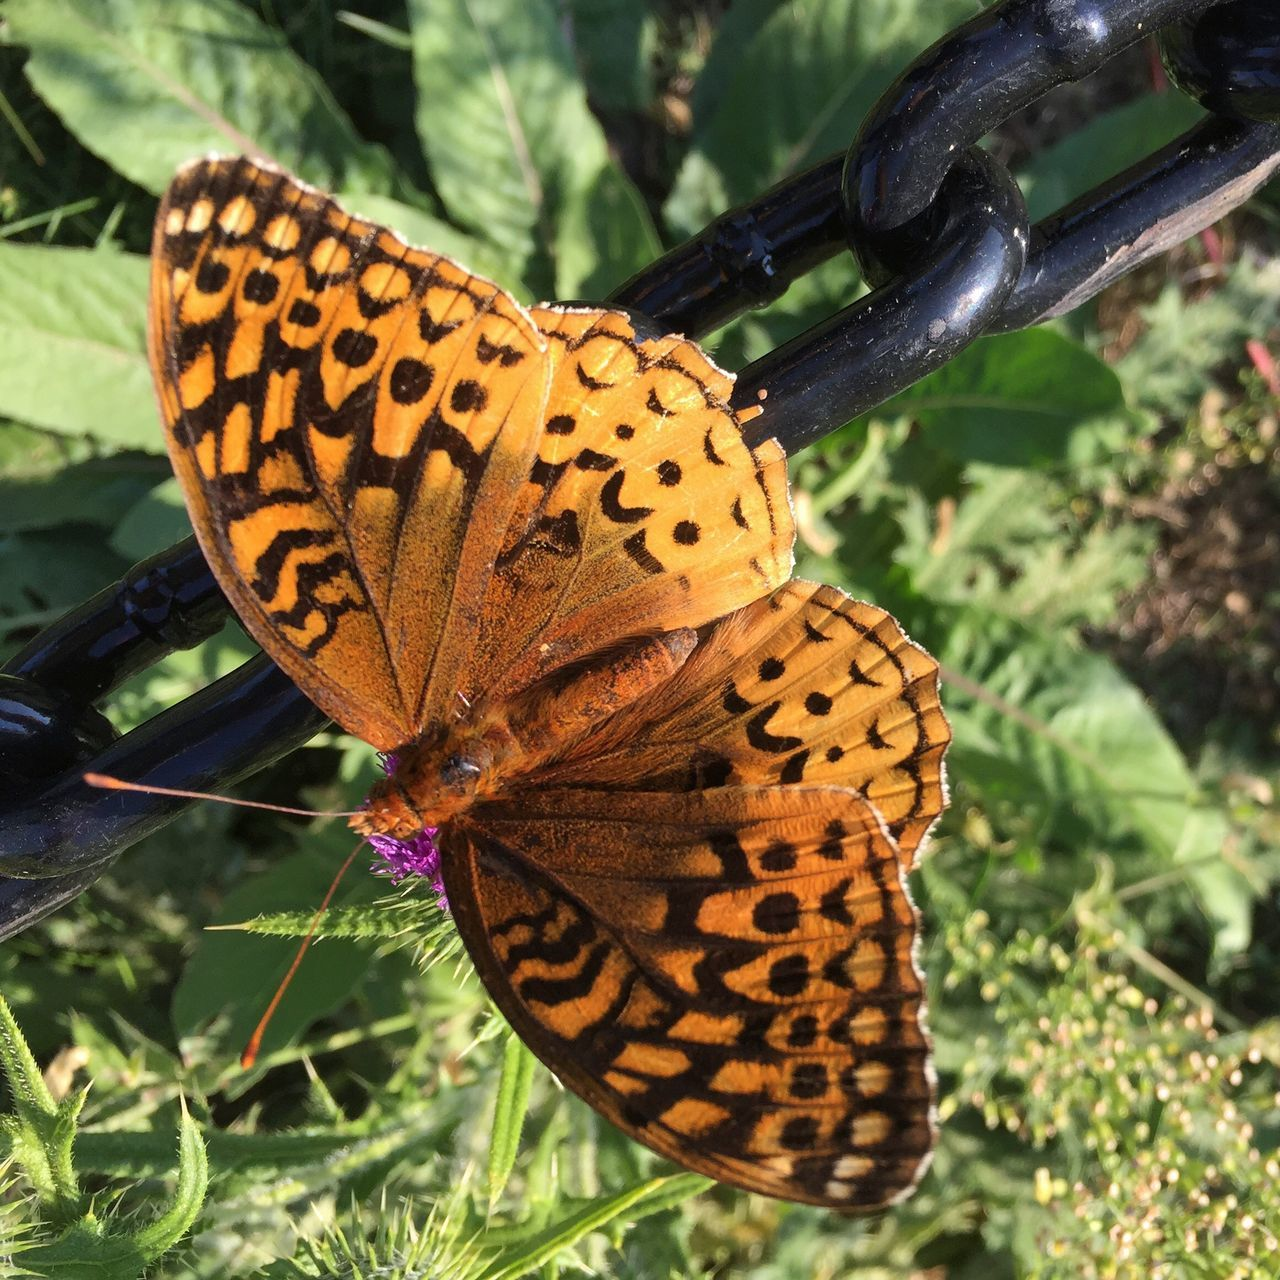 Great fritillary we saw on our walk by the river today. In Nashua, NH visiting family. Butterfly - Insect One Animal Wildlife Insect Animal Themes Animals In The Wild Butterfly Natural Pattern Close-up Animal Markings Animal Wing Orange Color Great Fritillary Macro Macro_collection Macro Photography Macro Nature Macro Beauty